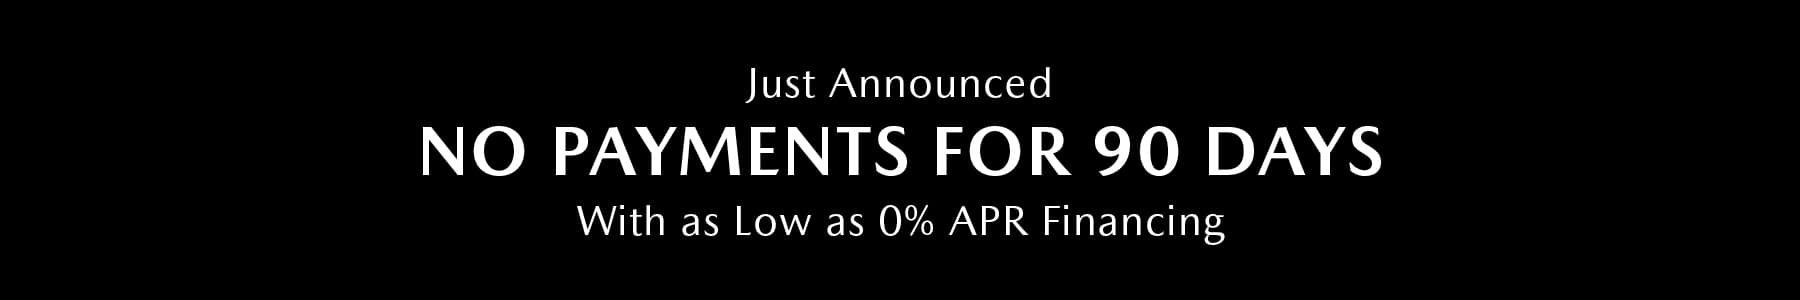 No payments for 90 days with as low as %0 APR financing.